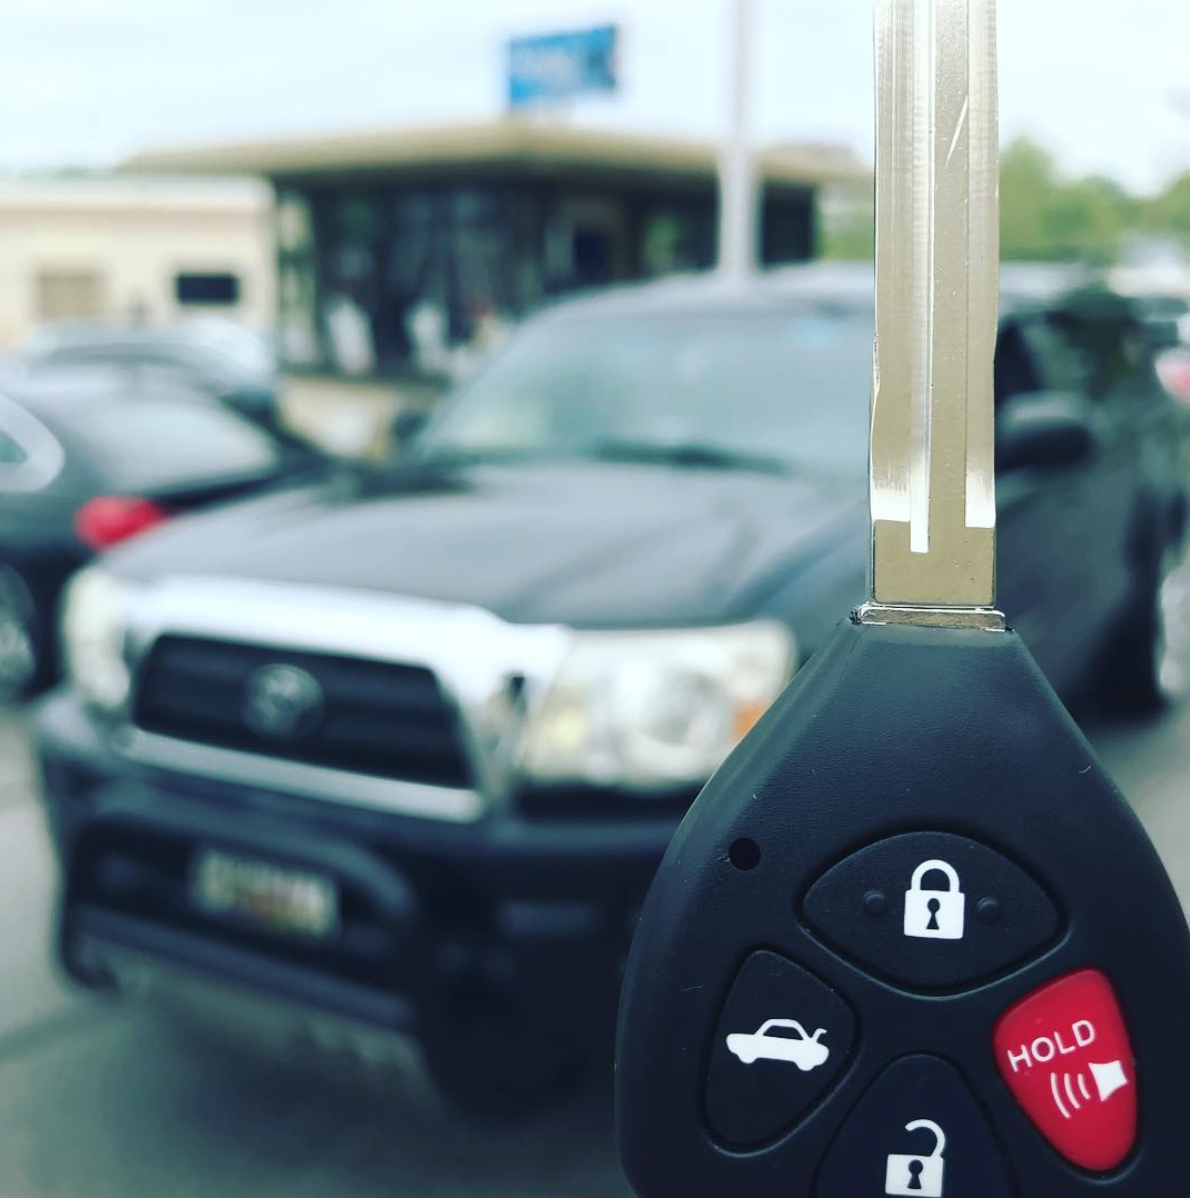 Car Locksmith at Sears The Keyless Shop cut and program Toyota Remote Key.